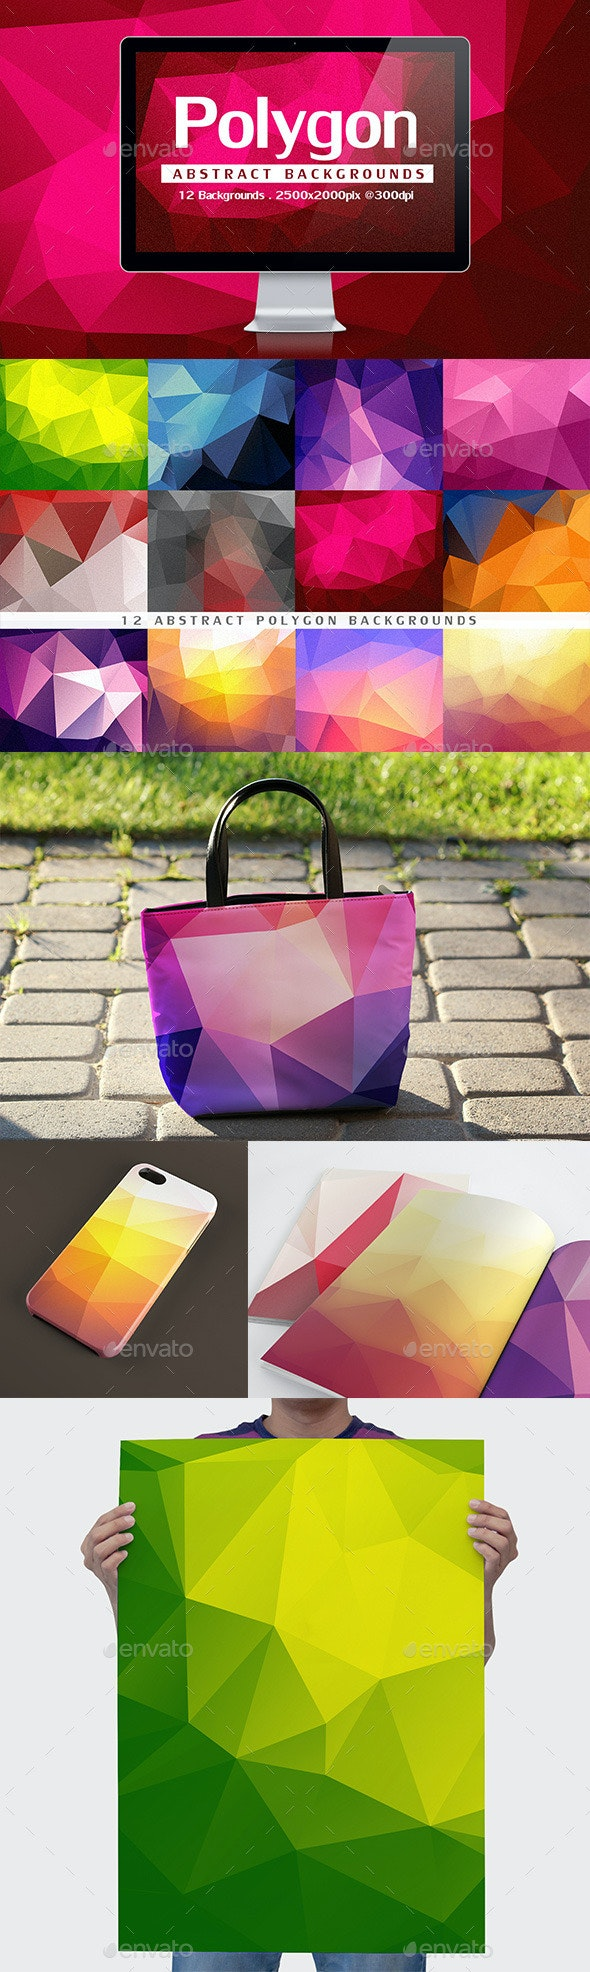 12 Abstract Polygon Backgrounds - Backgrounds Graphics